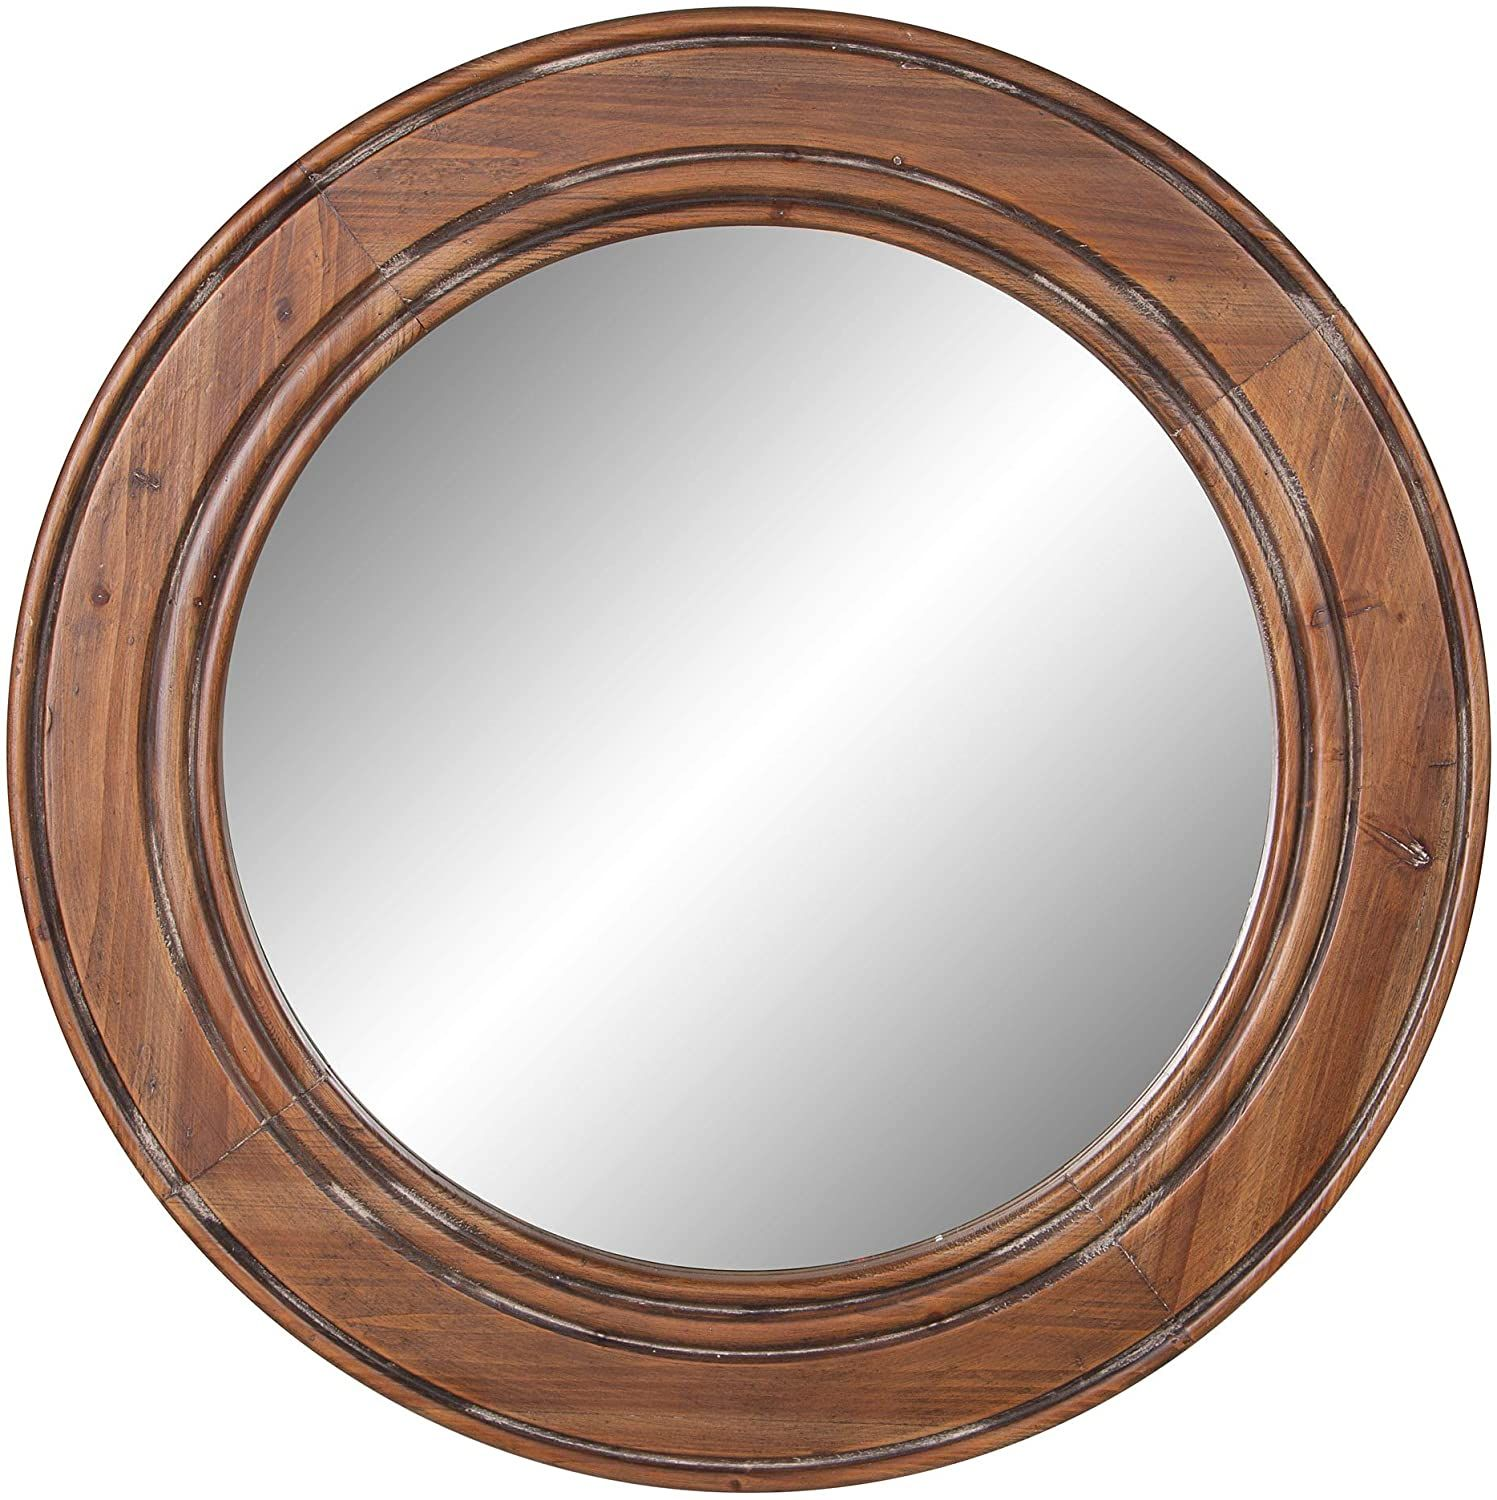 Reclaimed Wood Large Round Wall Accent Mirror The Nautical Decor Store In 2020 Accent Mirrors Accent Wall Mirror Decor